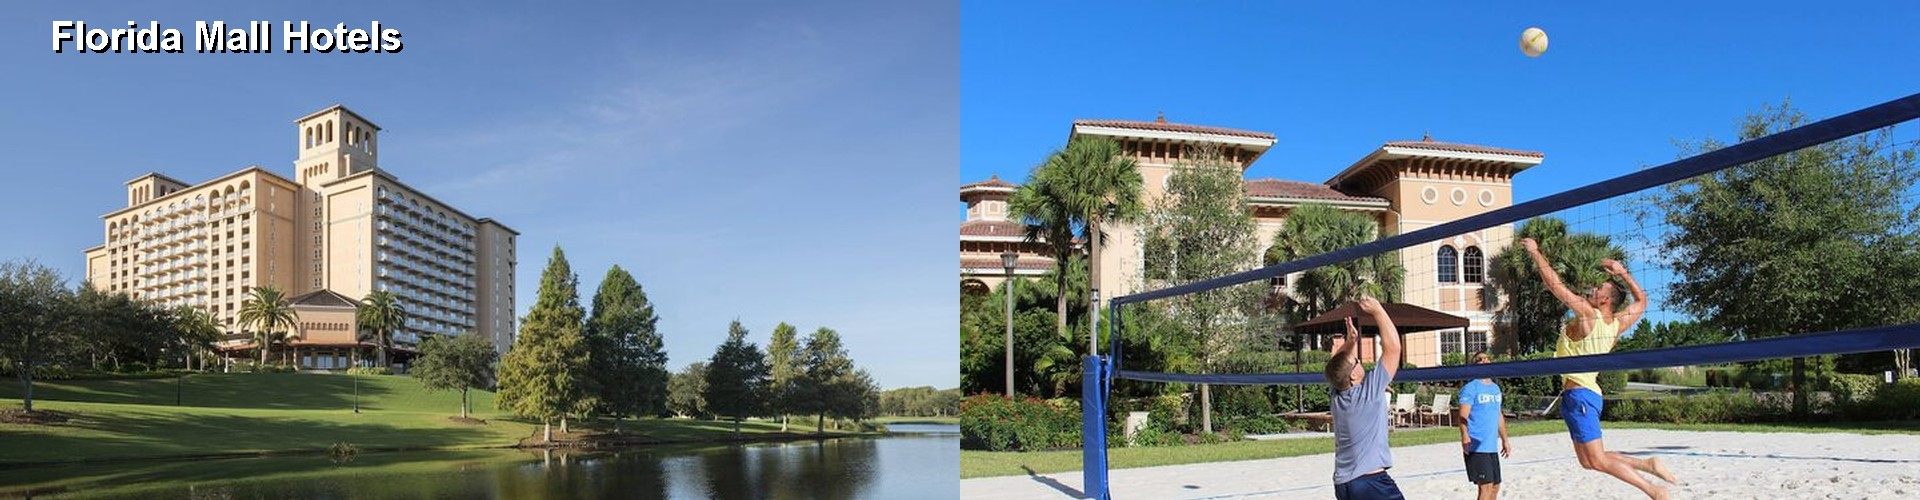 40 hotels near florida mall in orlando fl